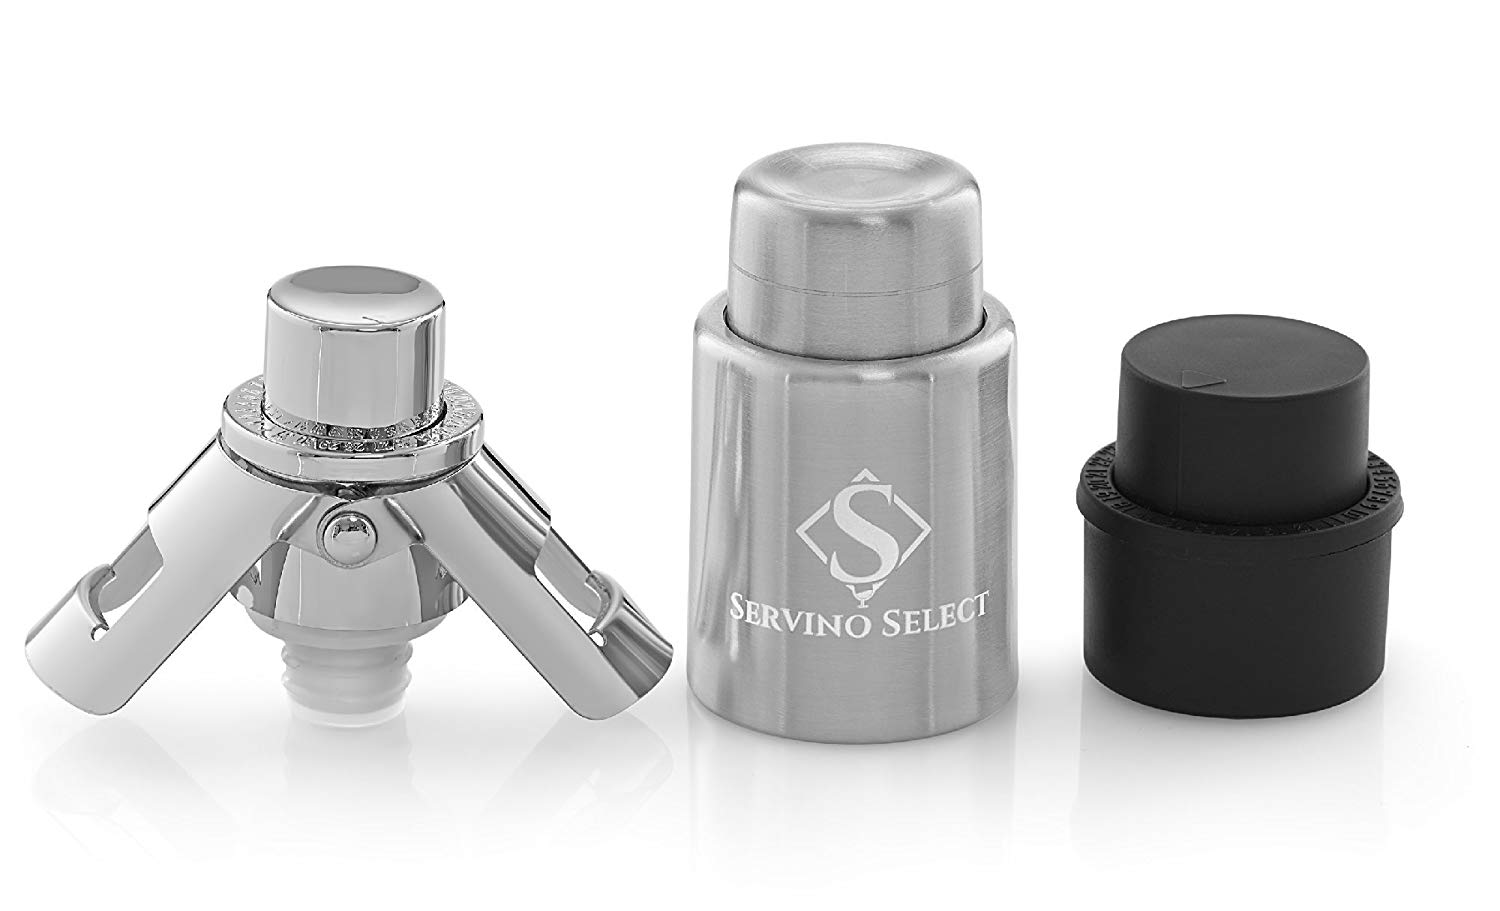 Servino select bottle stoppers with built-in pumps